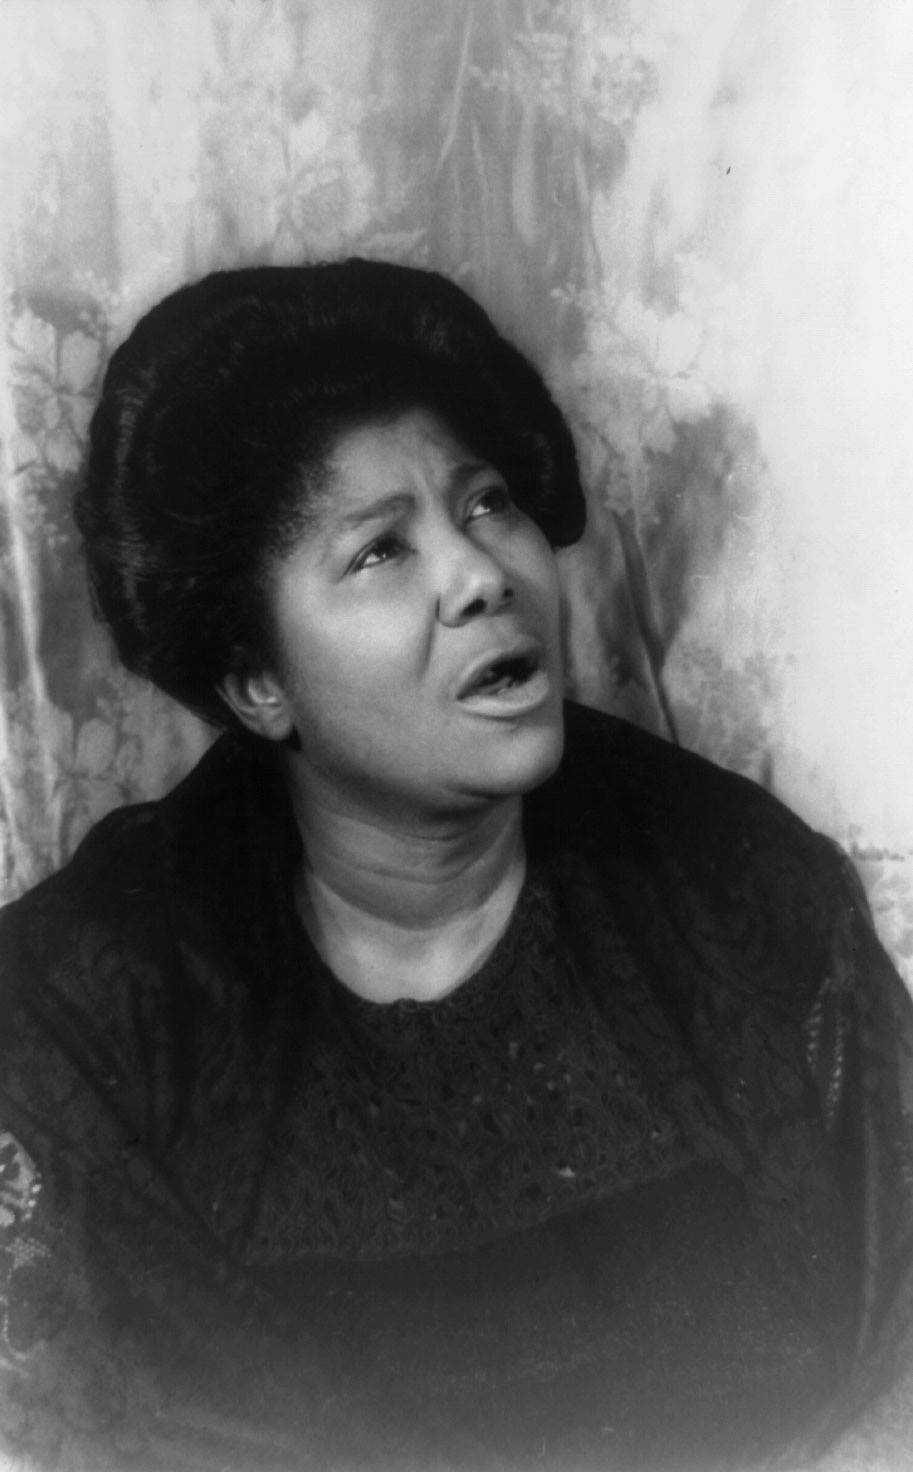 """""""Move On Up a Little Higher"""" - In 1948, Mahalia Jackson recorded William Herbet Brewsters' inspiring gospel song, ?Move On Up a Little Higher.? Mahalia?s rendition resonated with fans, and brought her unheard of mainstream success for a gospel artist. The record went on to sell eight million copies, and was later honored in the Grammy Hall of Fame Awards in 1998. Jackson began touring concert halls in the United States and Europe, bringing her powerful voice and message of faith to people around the world. Jackson found success in her record contract with Columbia Records.(Photo: Courtesy Library of Congress)"""